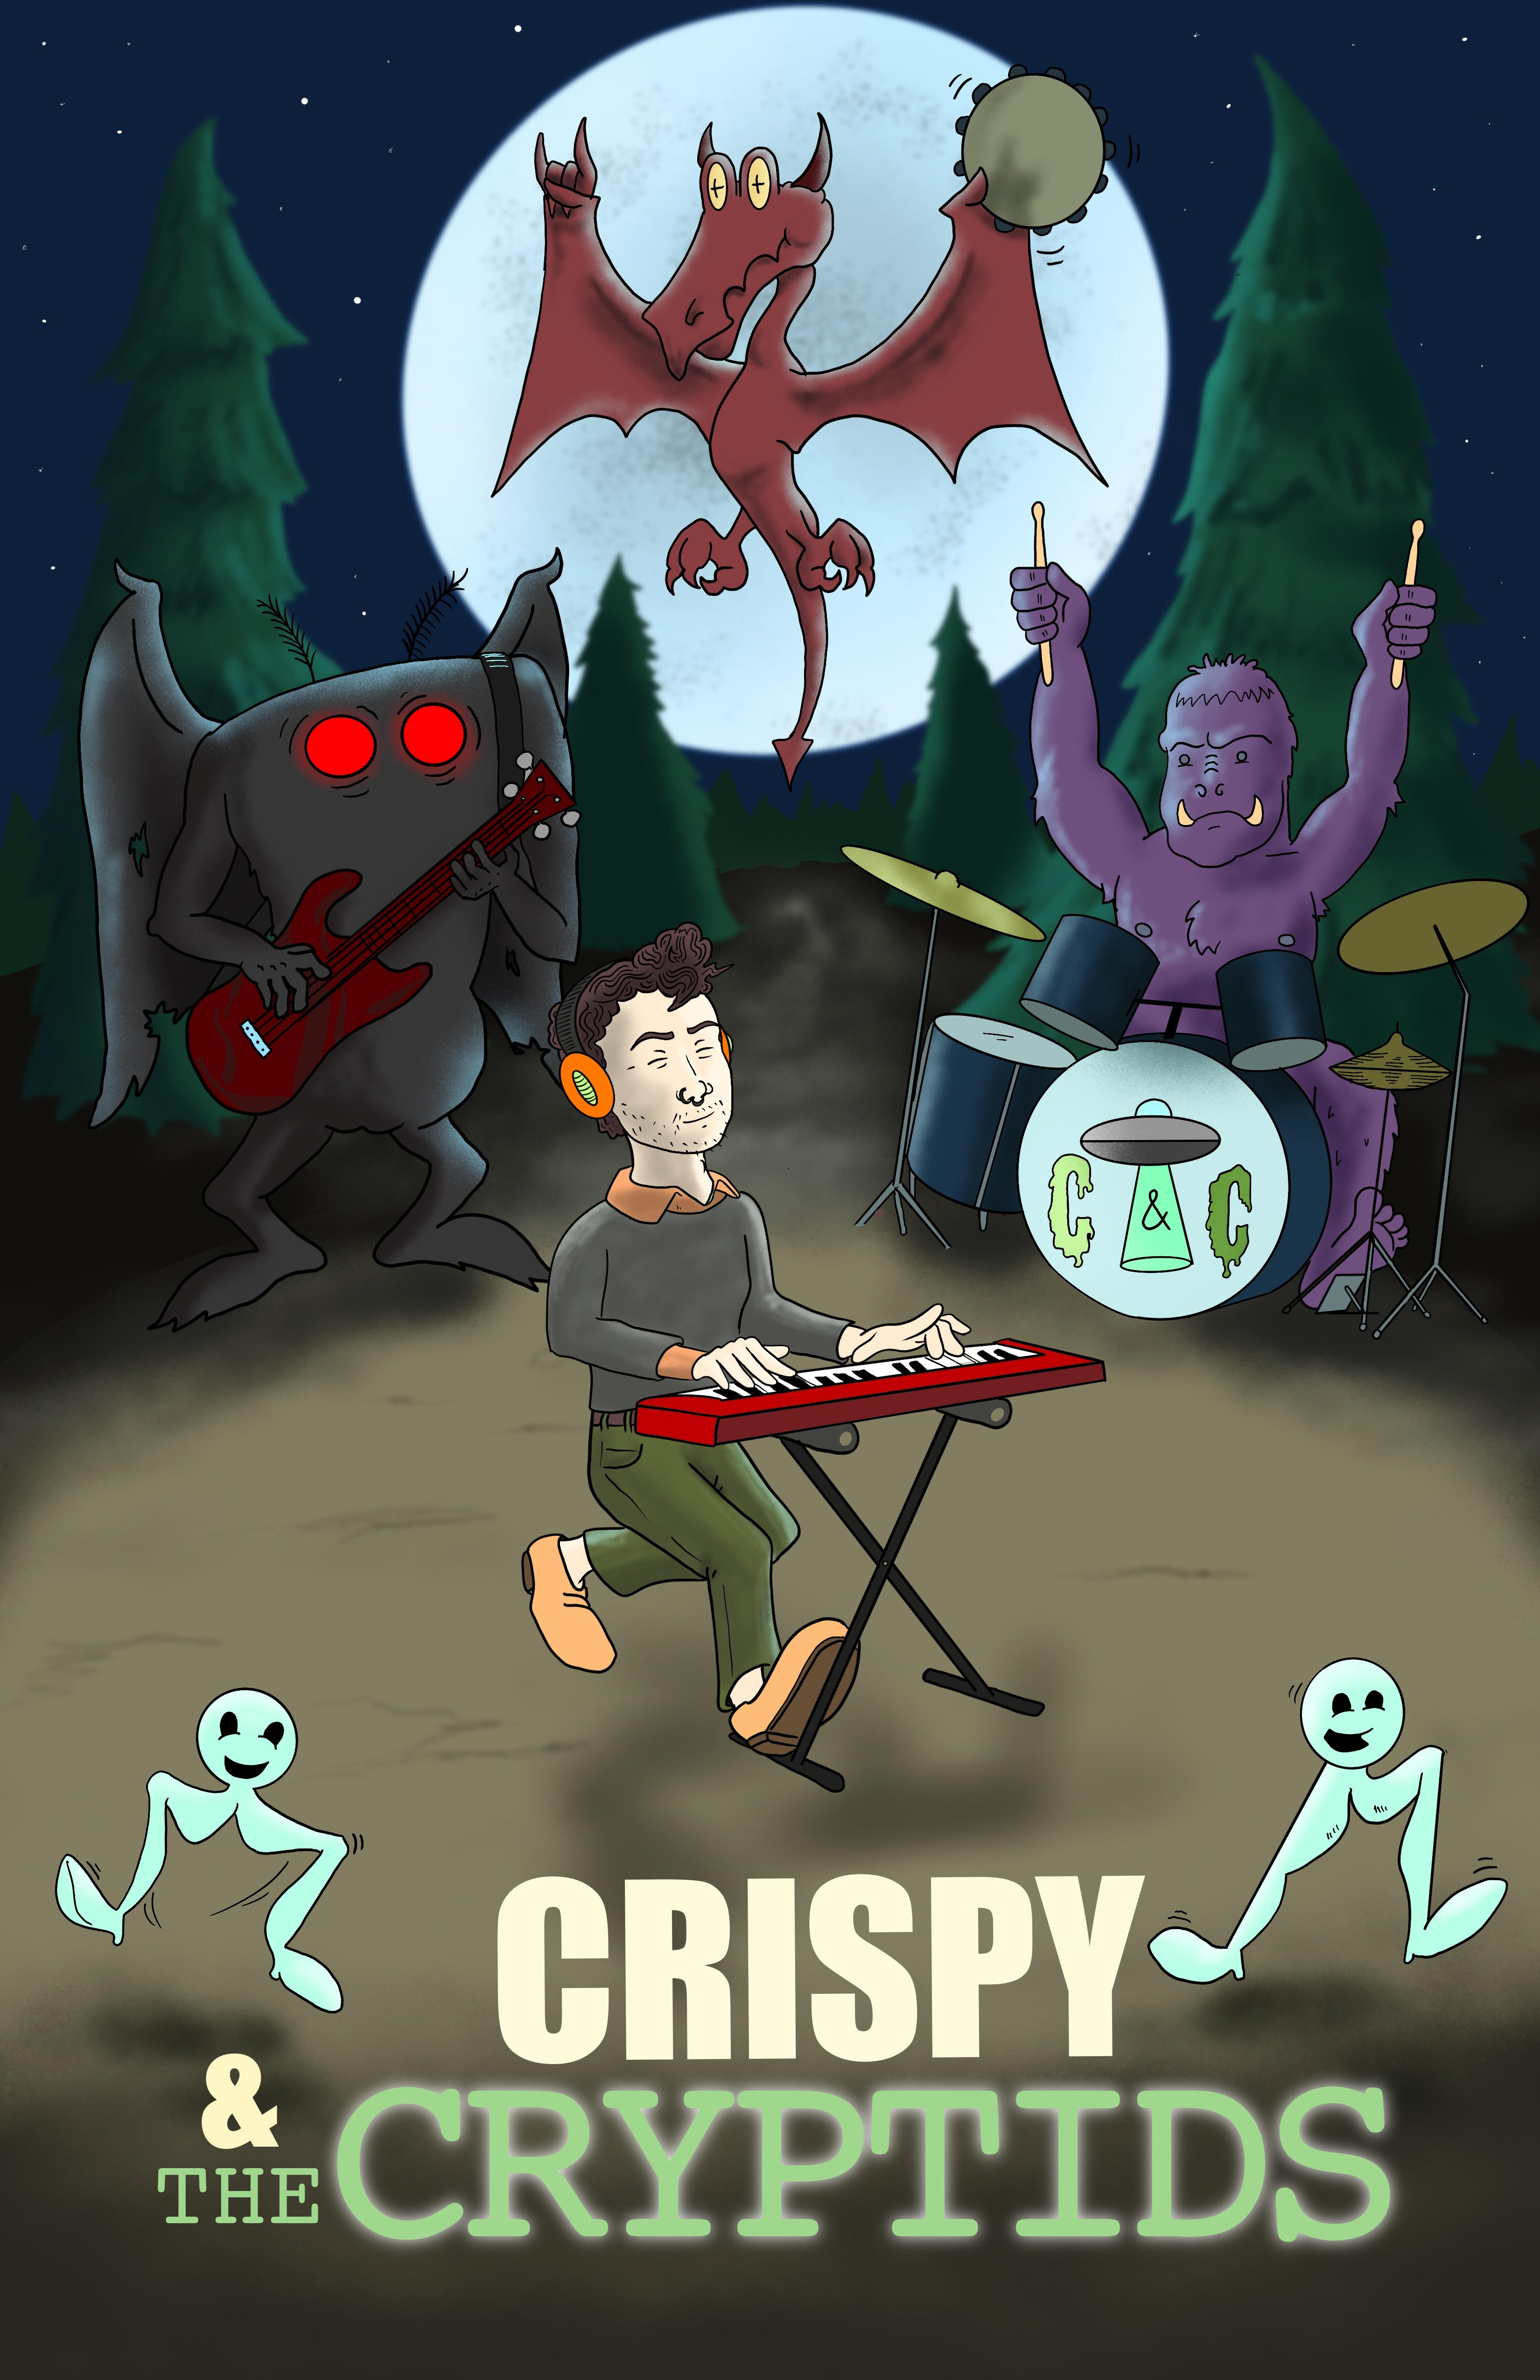 Crispy and the Cryptids